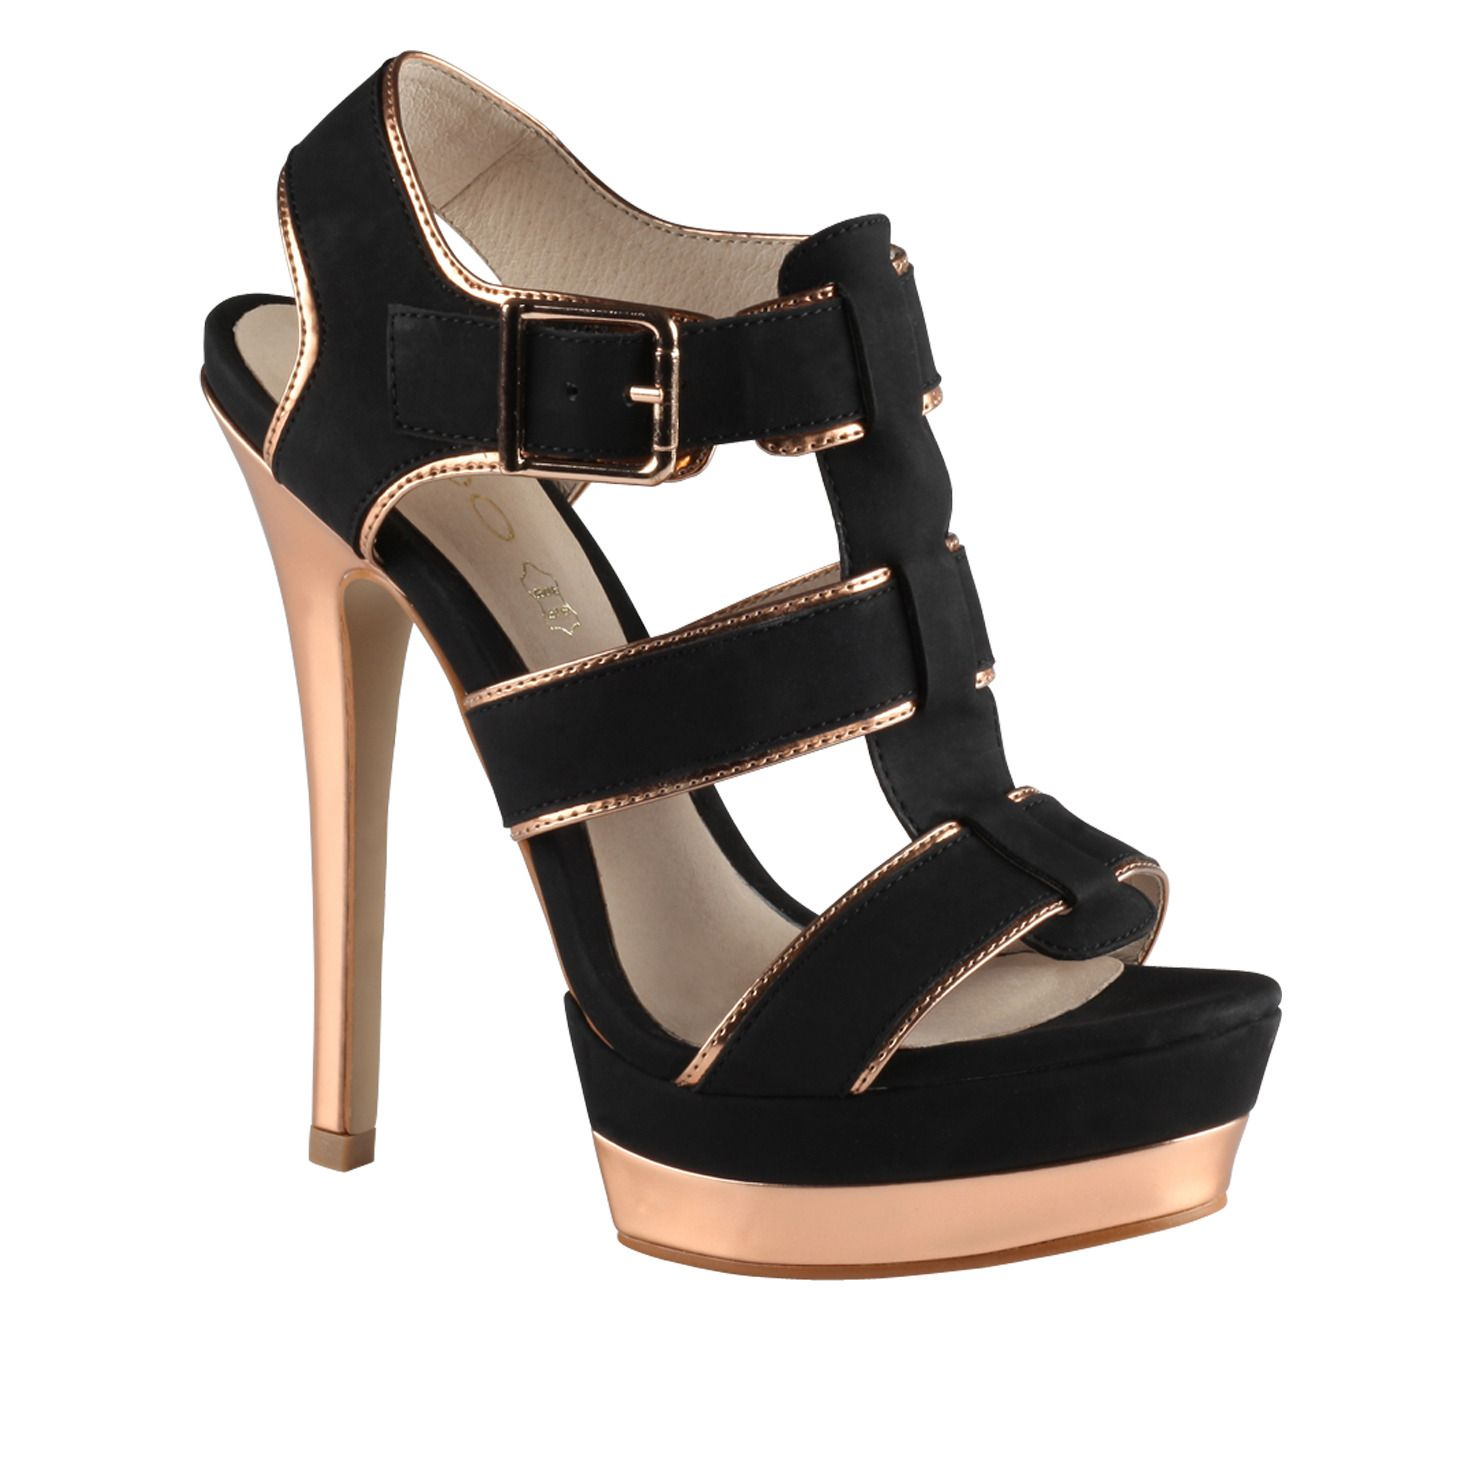 DHARINEE - Clearance's heels women's sandals for sale at ALDO ...